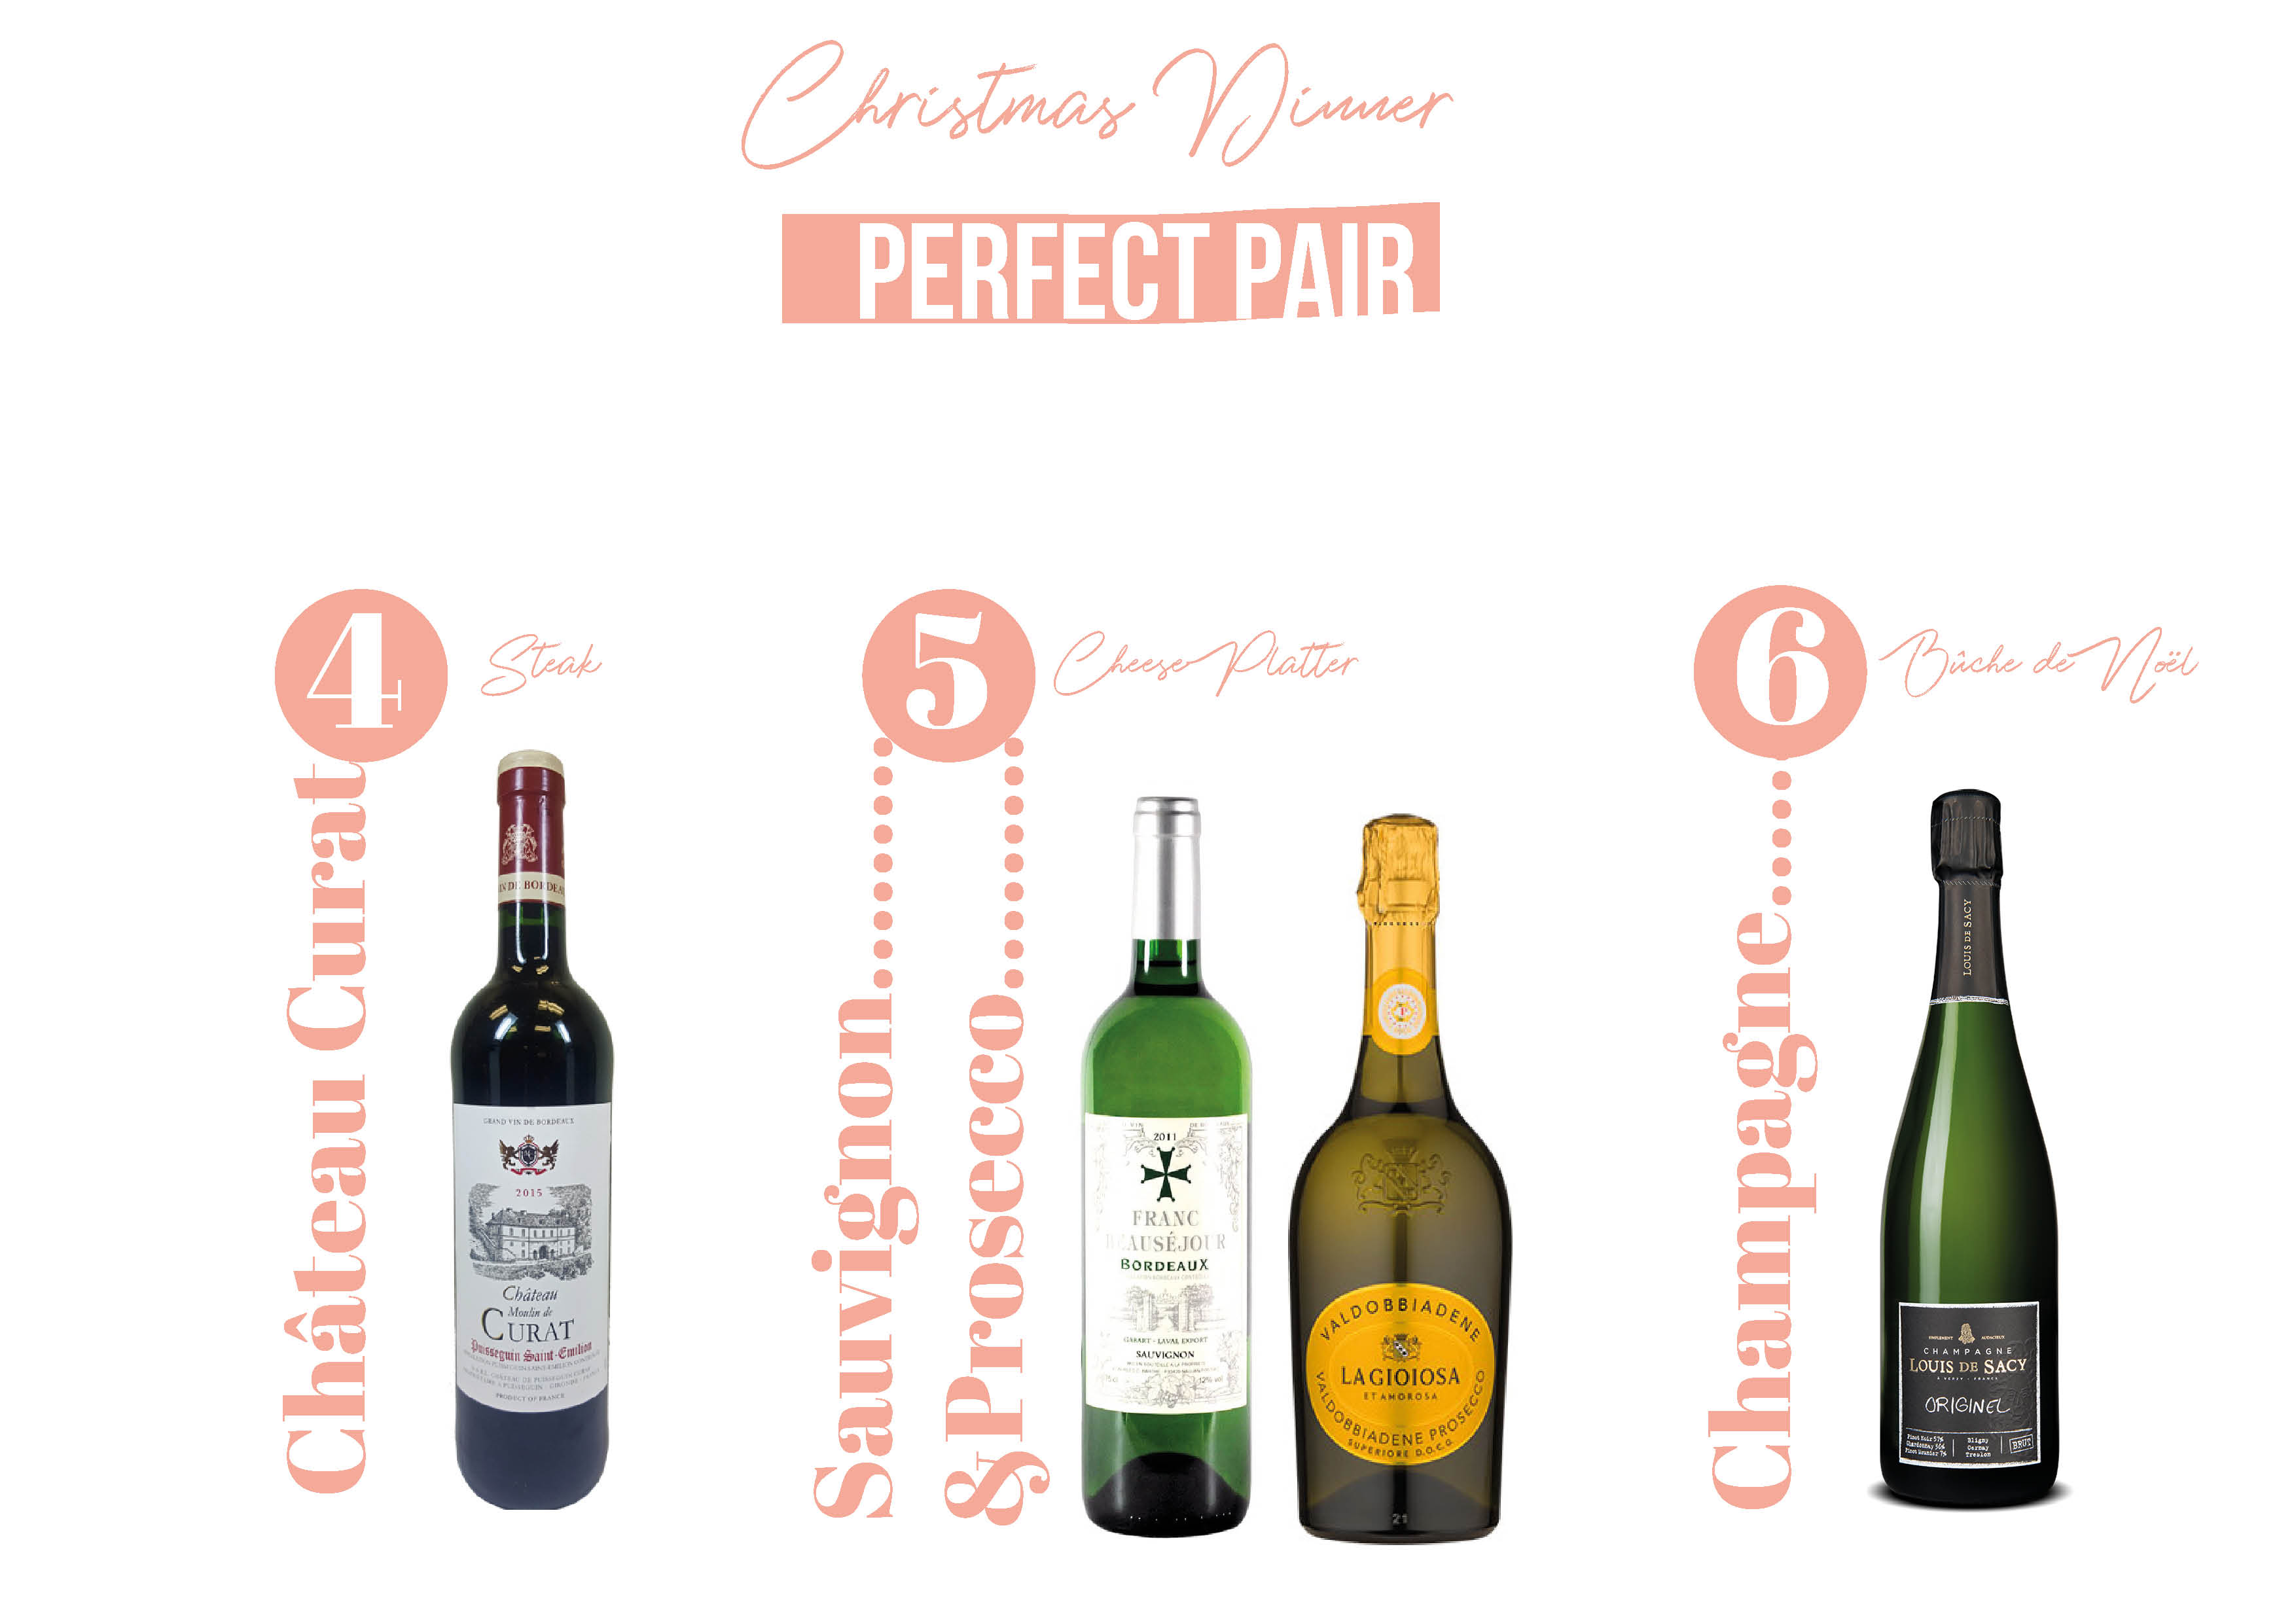 Perfect Pair Christmas Dinner - Wine Pairing Christmas Dinner - Atelier Monnier Fine Wines Boutique Miami, Dadeland, Pinecrest, Brickell, Wine Pairing Miami, Chateau Curat, Sauvignon Blanc, Prosecco, Champagne, Louis de Sacy